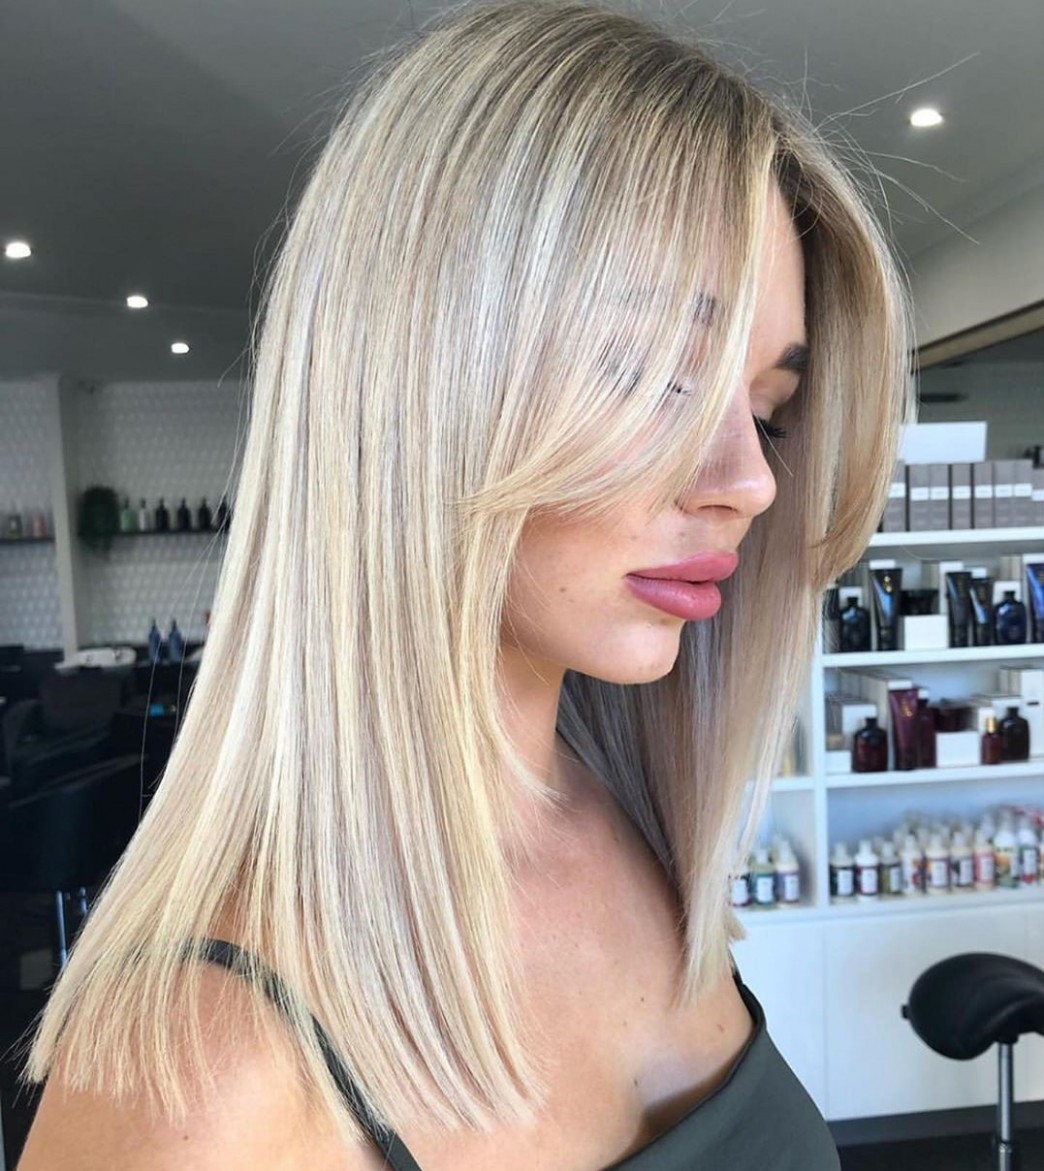 8 Trendy Haircuts And Hairstyles With Bangs In 8 Hair Adviser Long Side Bangs